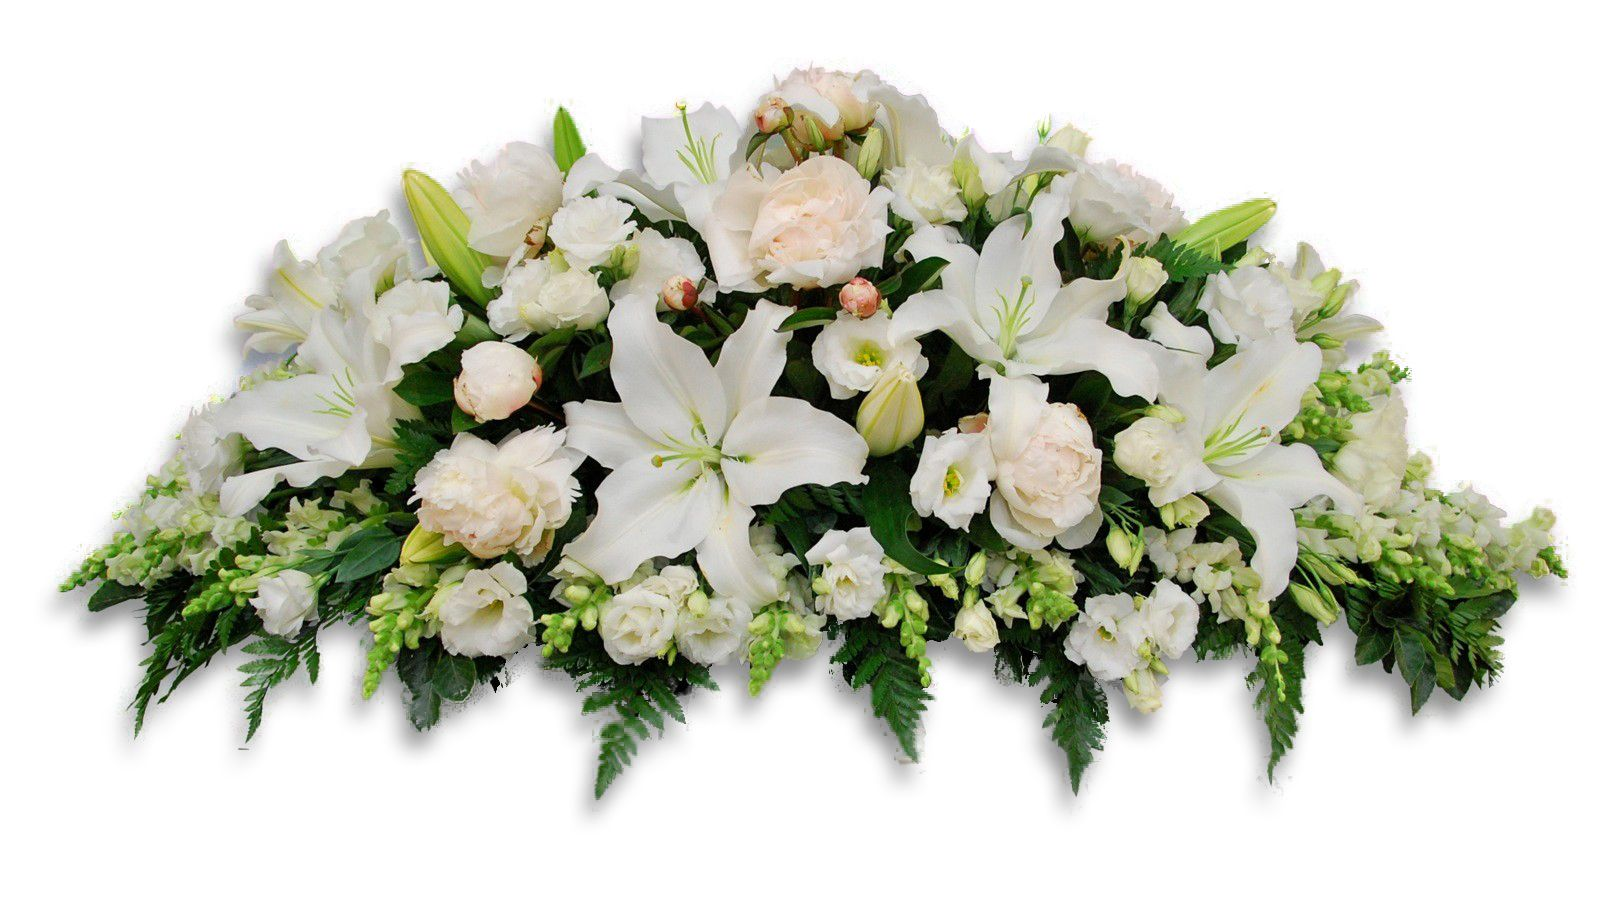 White Casket Including Roses Peonies Lillies Lisianthus And